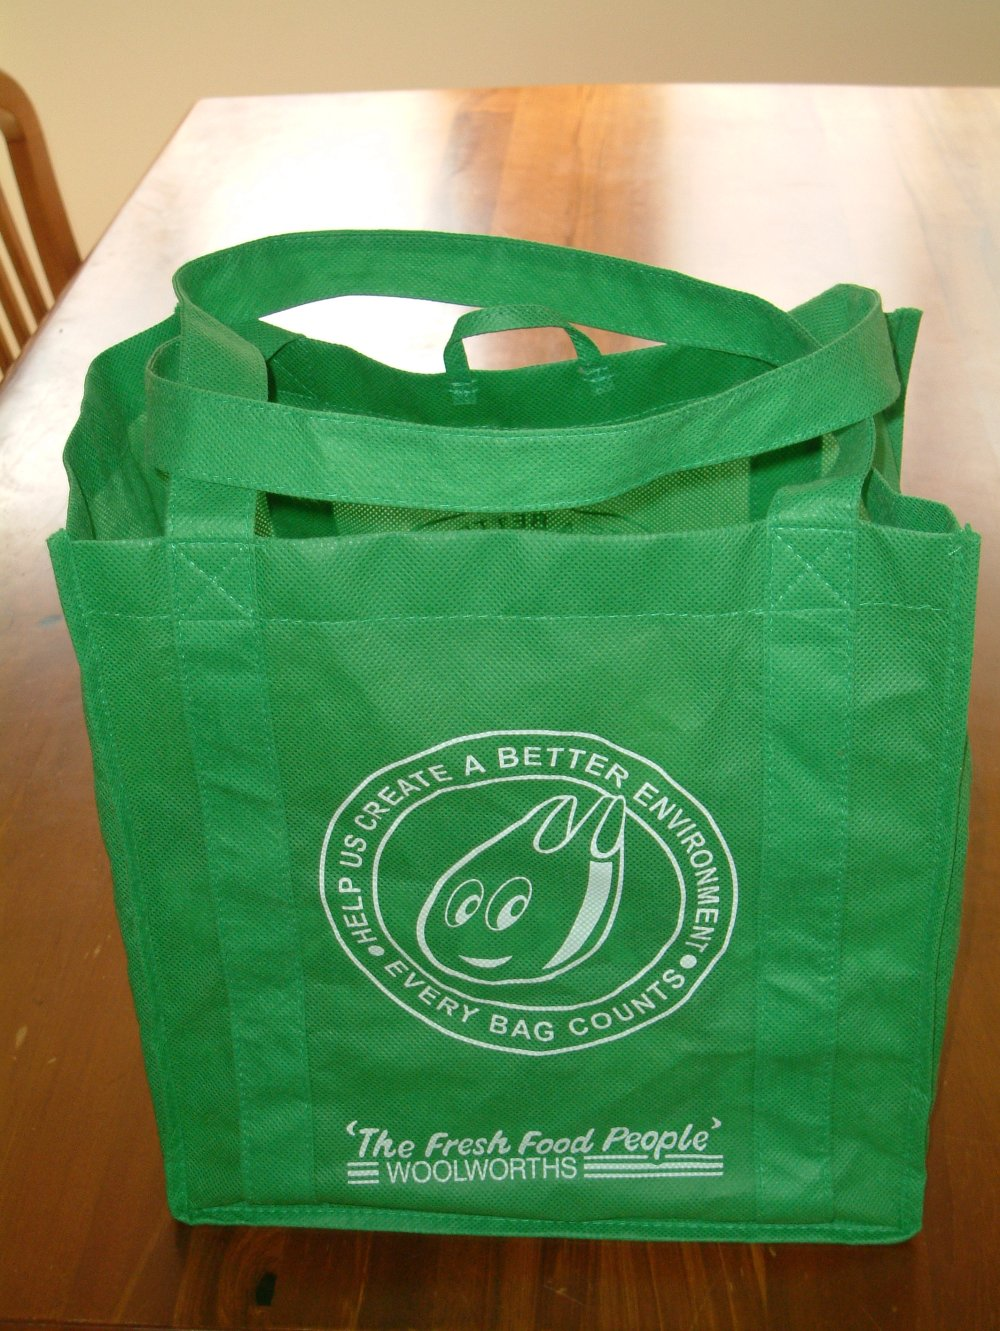 124d7b588 Reusable shopping bag - Wikipedia